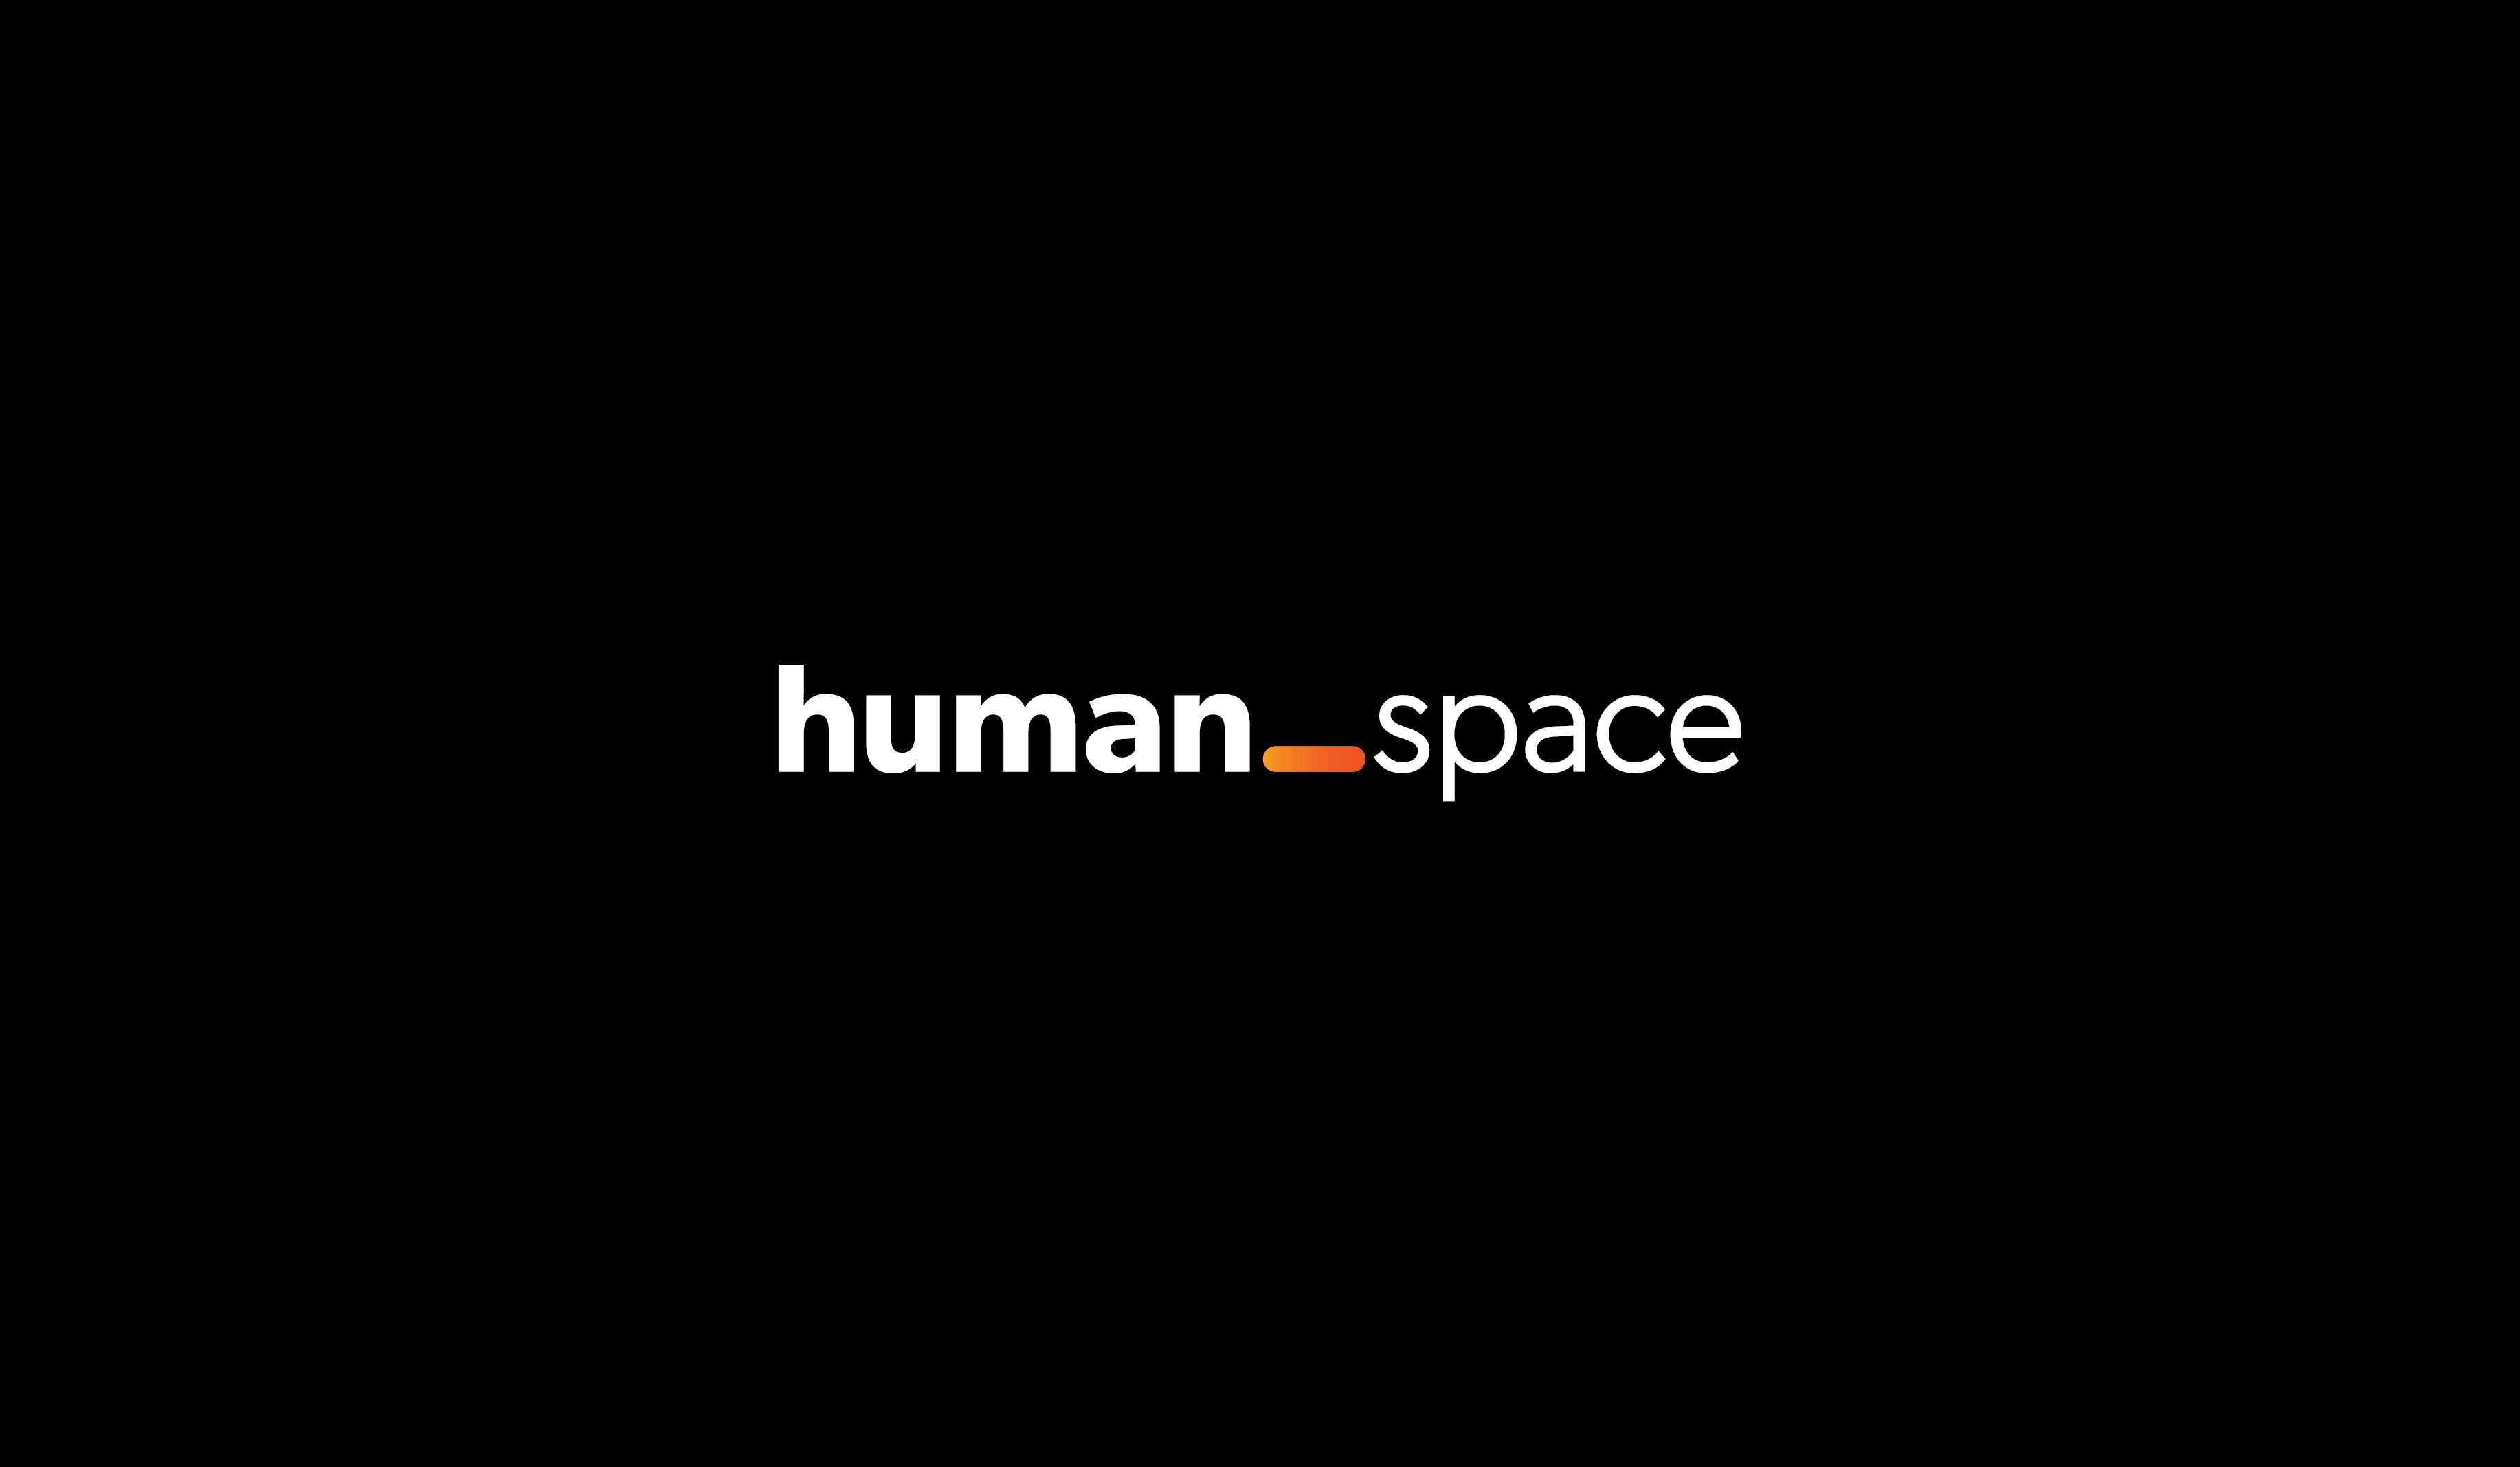 the Human Space logo on a black background